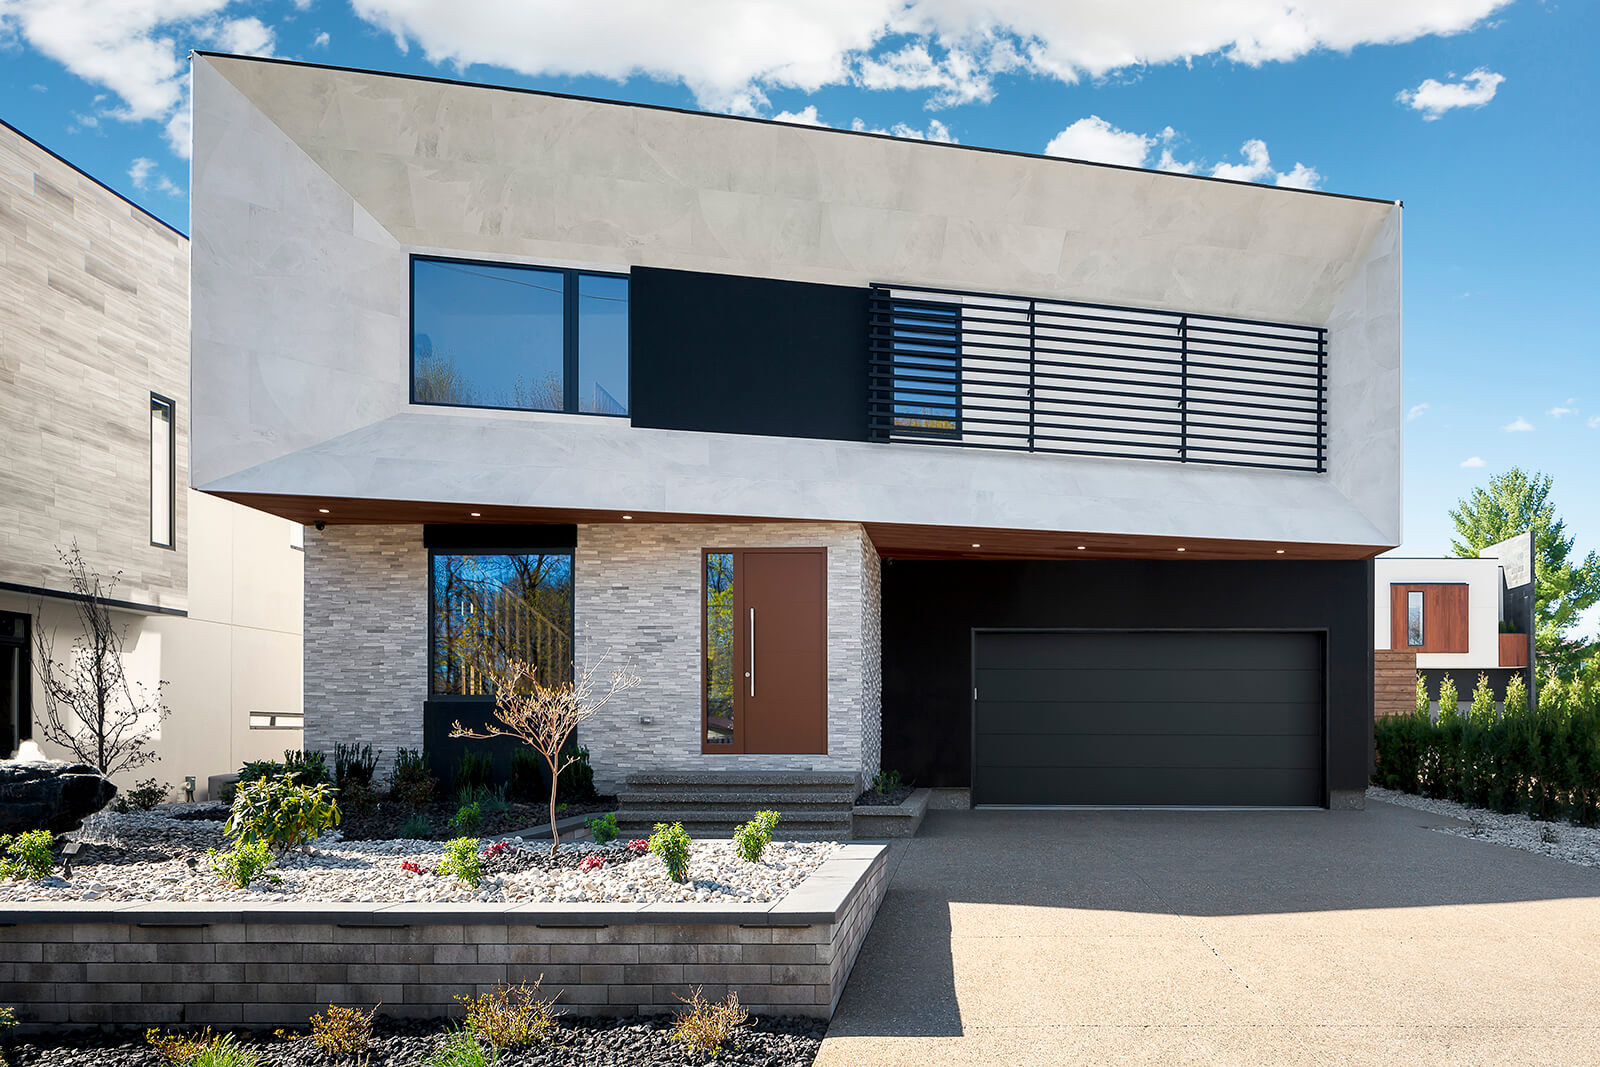 London Home Builders Millstone Homes - Home2 Front Final